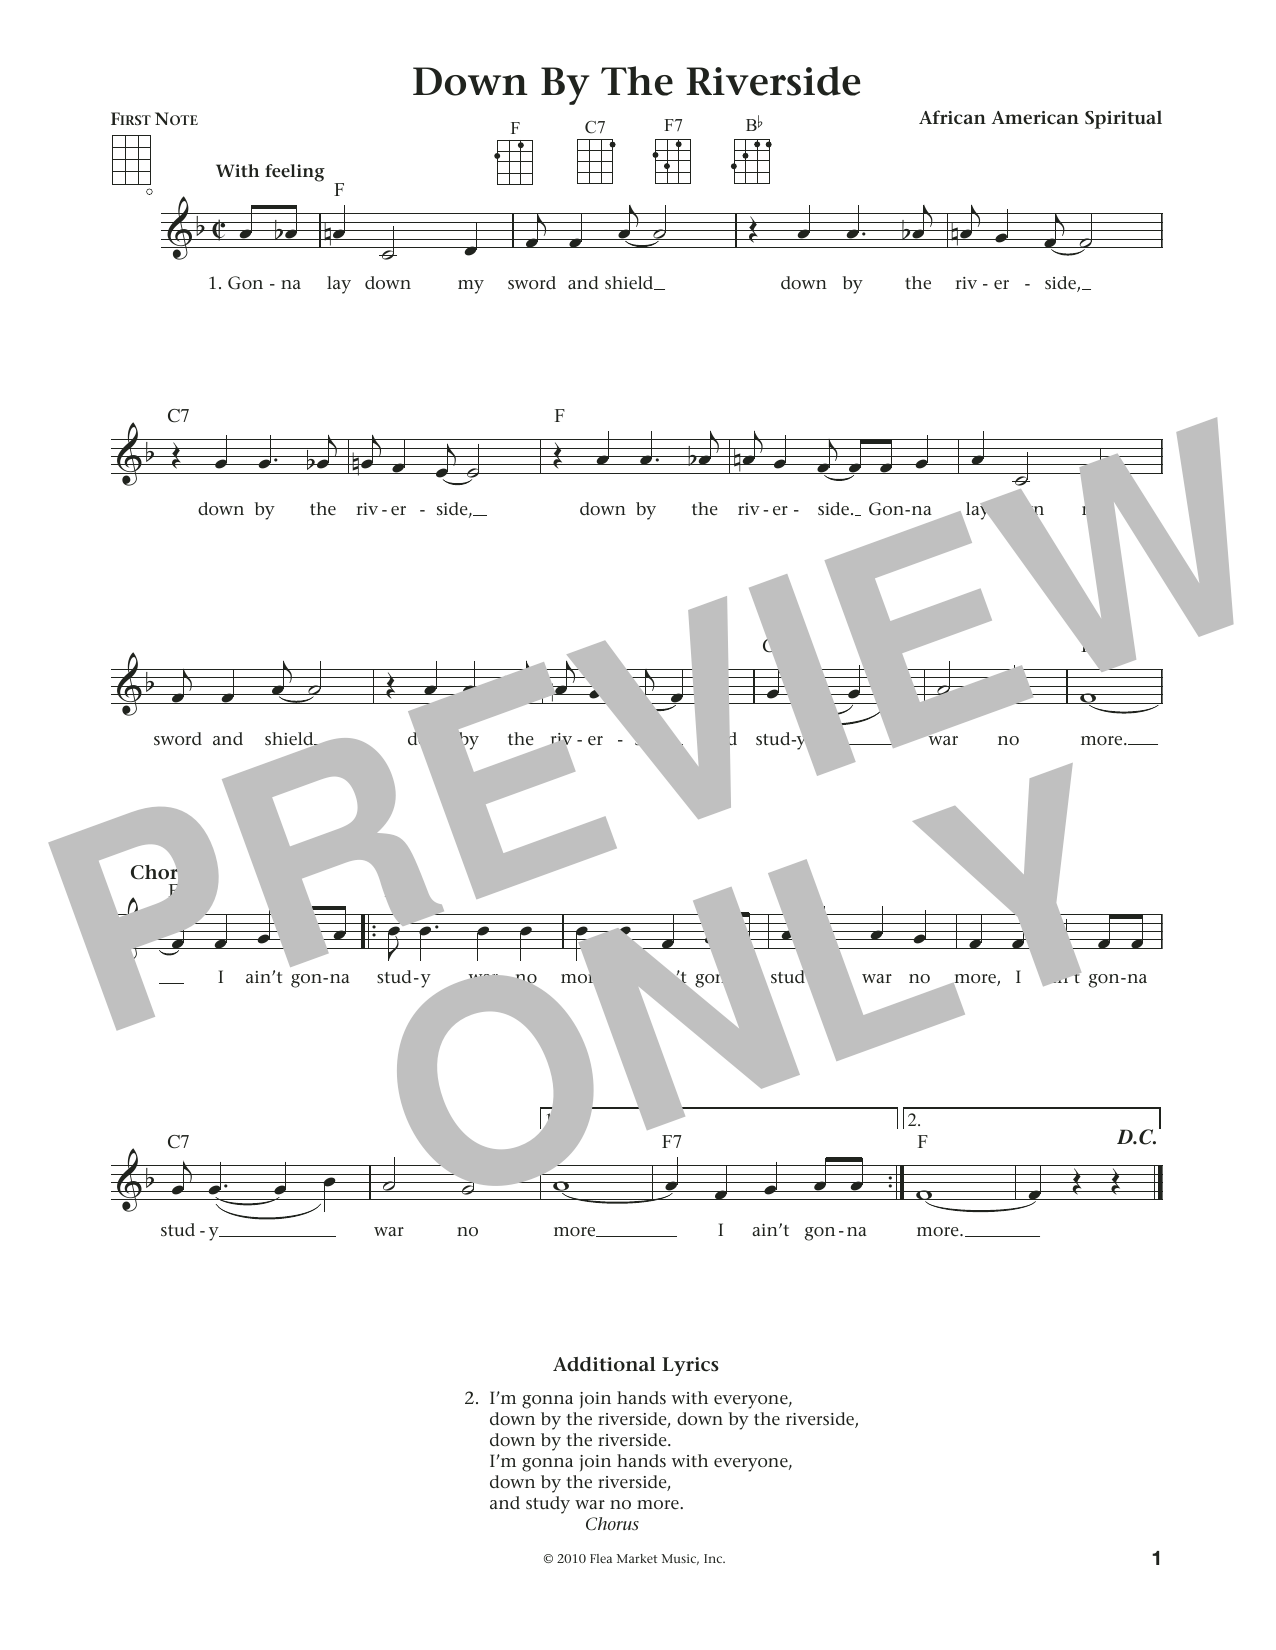 Down By The Riverside (from The Daily Ukulele) (arr. Liz and Jim Beloff) (Ukulele)